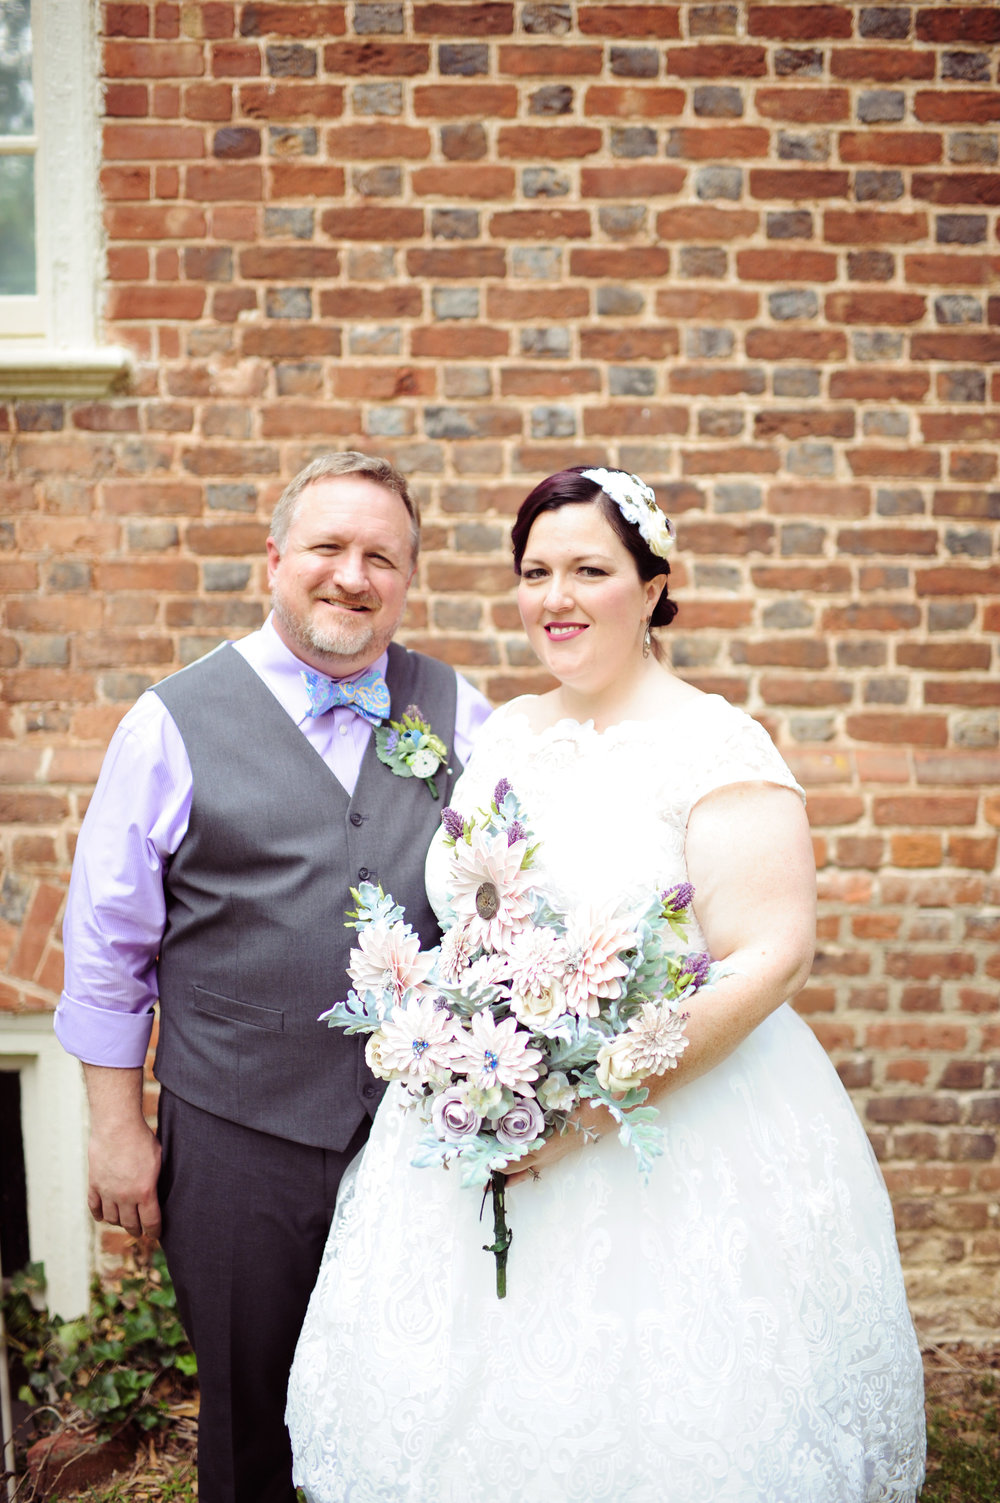 KlineWedding05.27.17-141.jpg